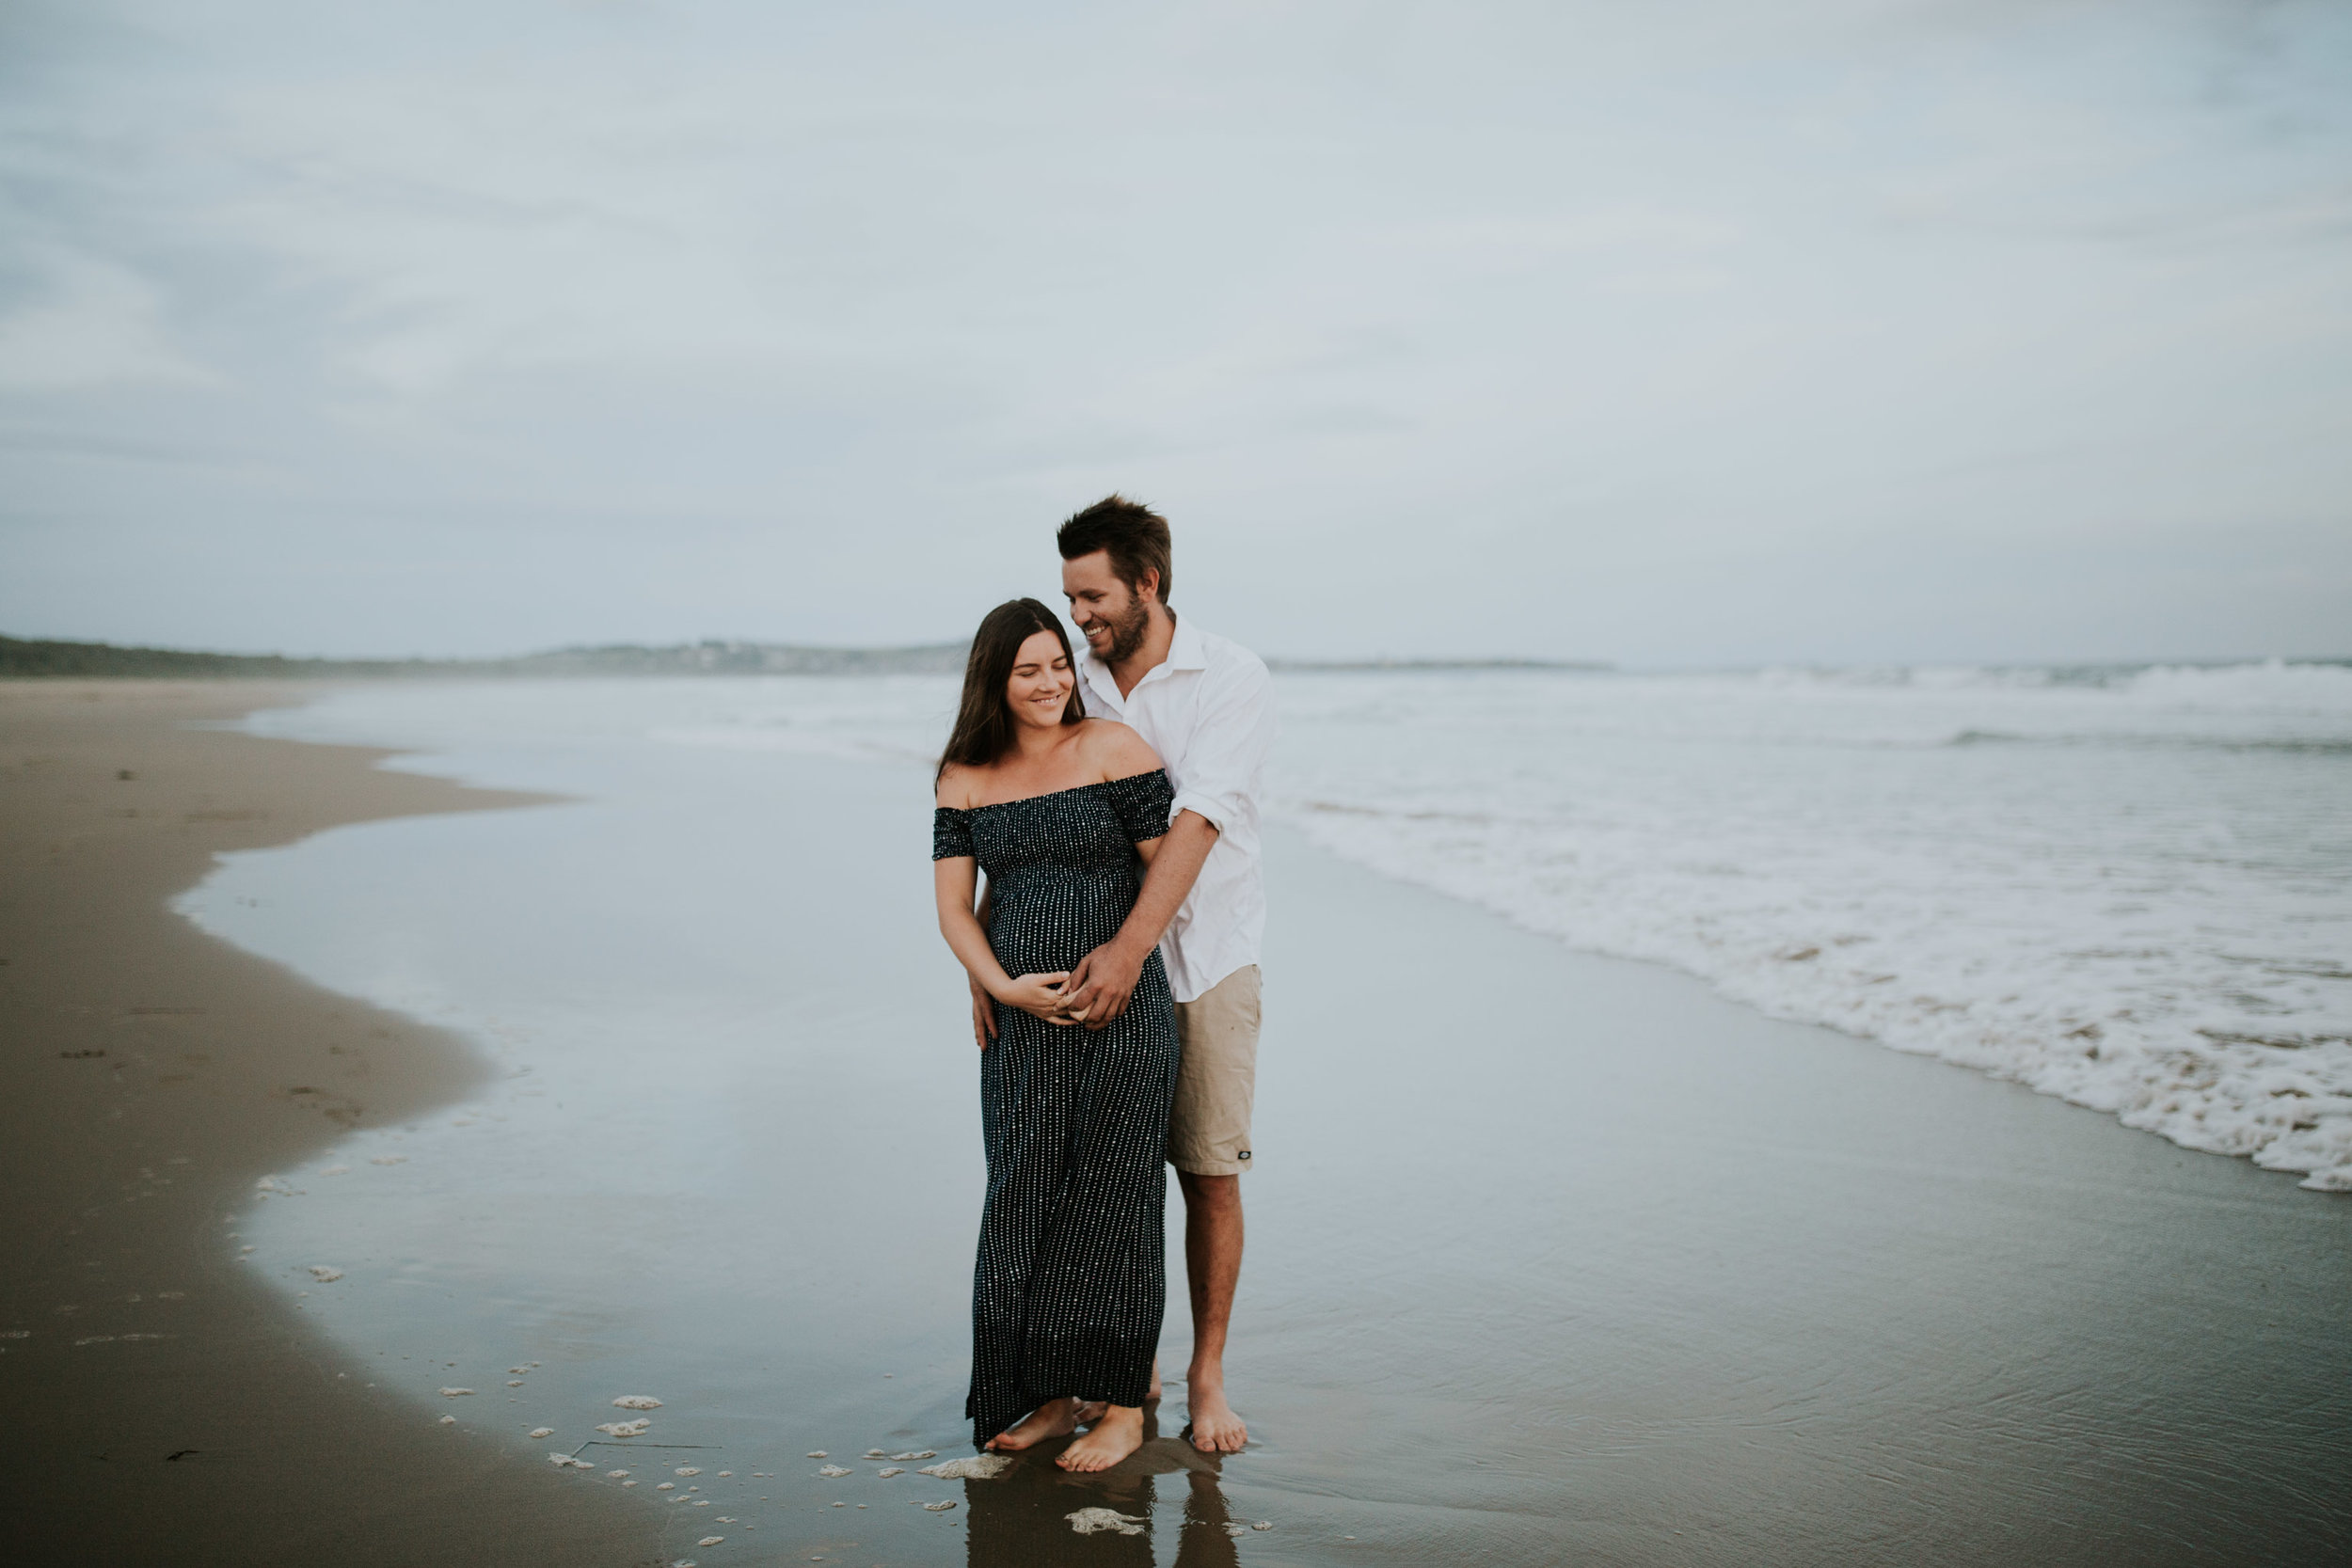 AMY+ANDREW+SHOALHAVEN+HEADS+BEACH+MATERNITY+SESSION+CANDID-29.jpg